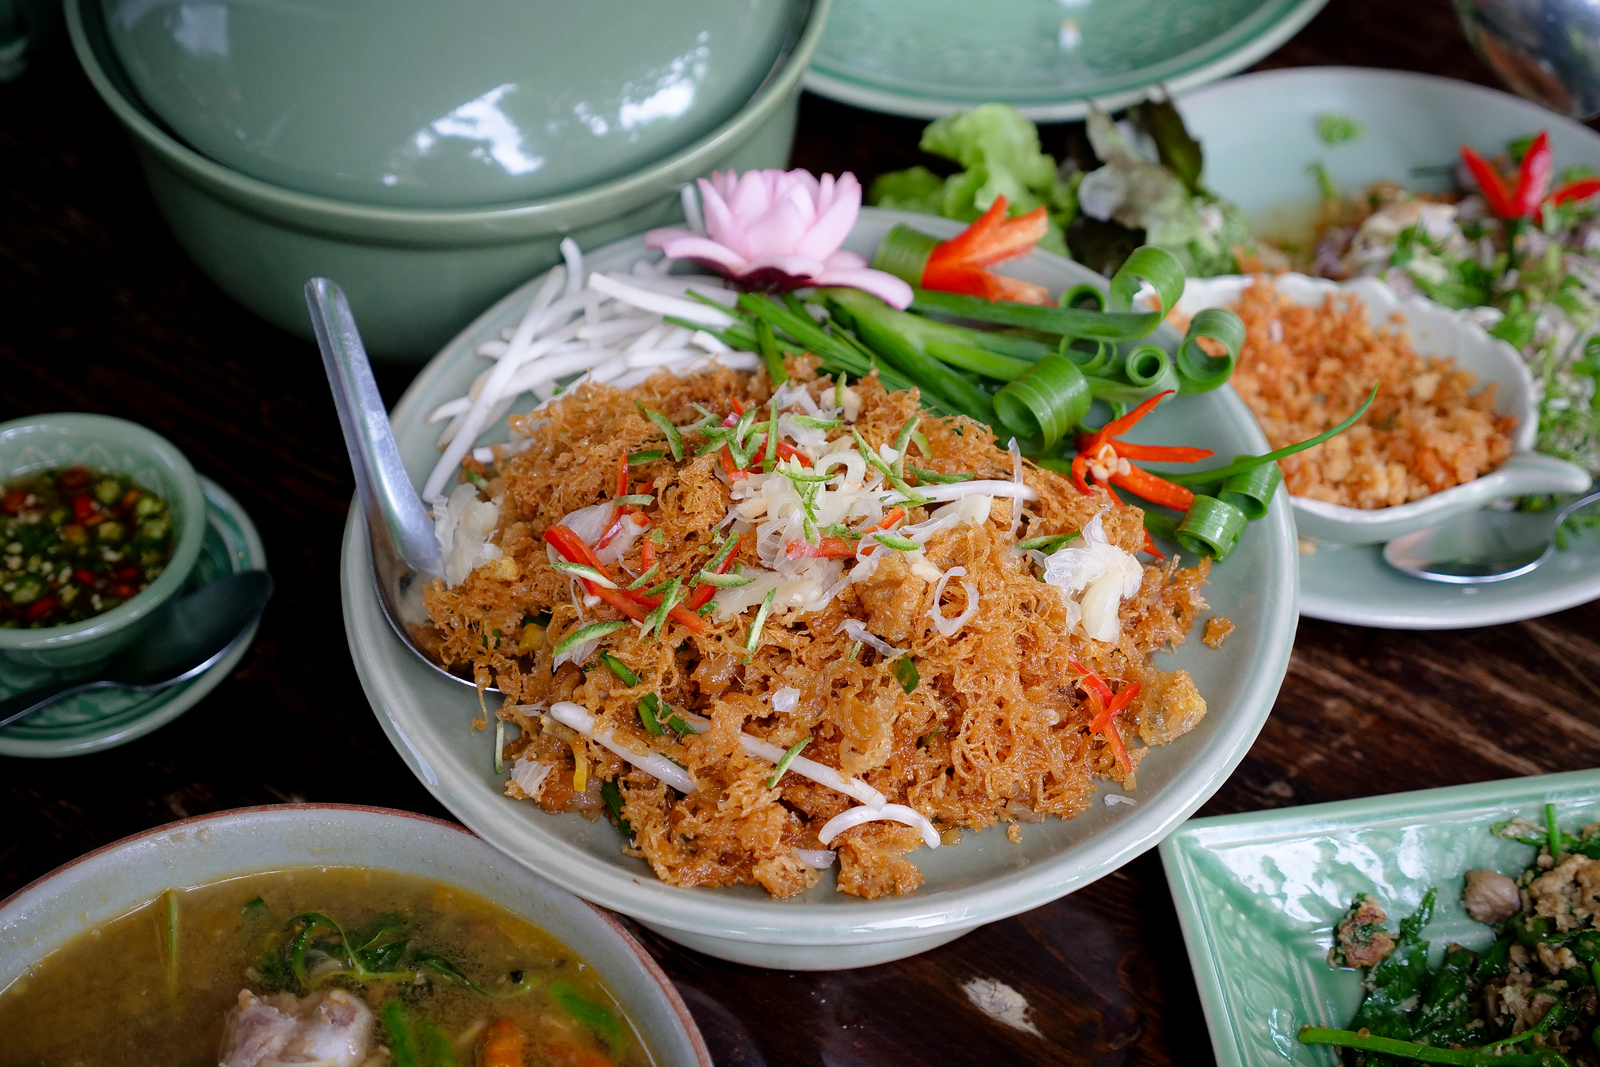 Amazing chef skills to create this fine dish of mee grawp crispy noodles fried with herbs.